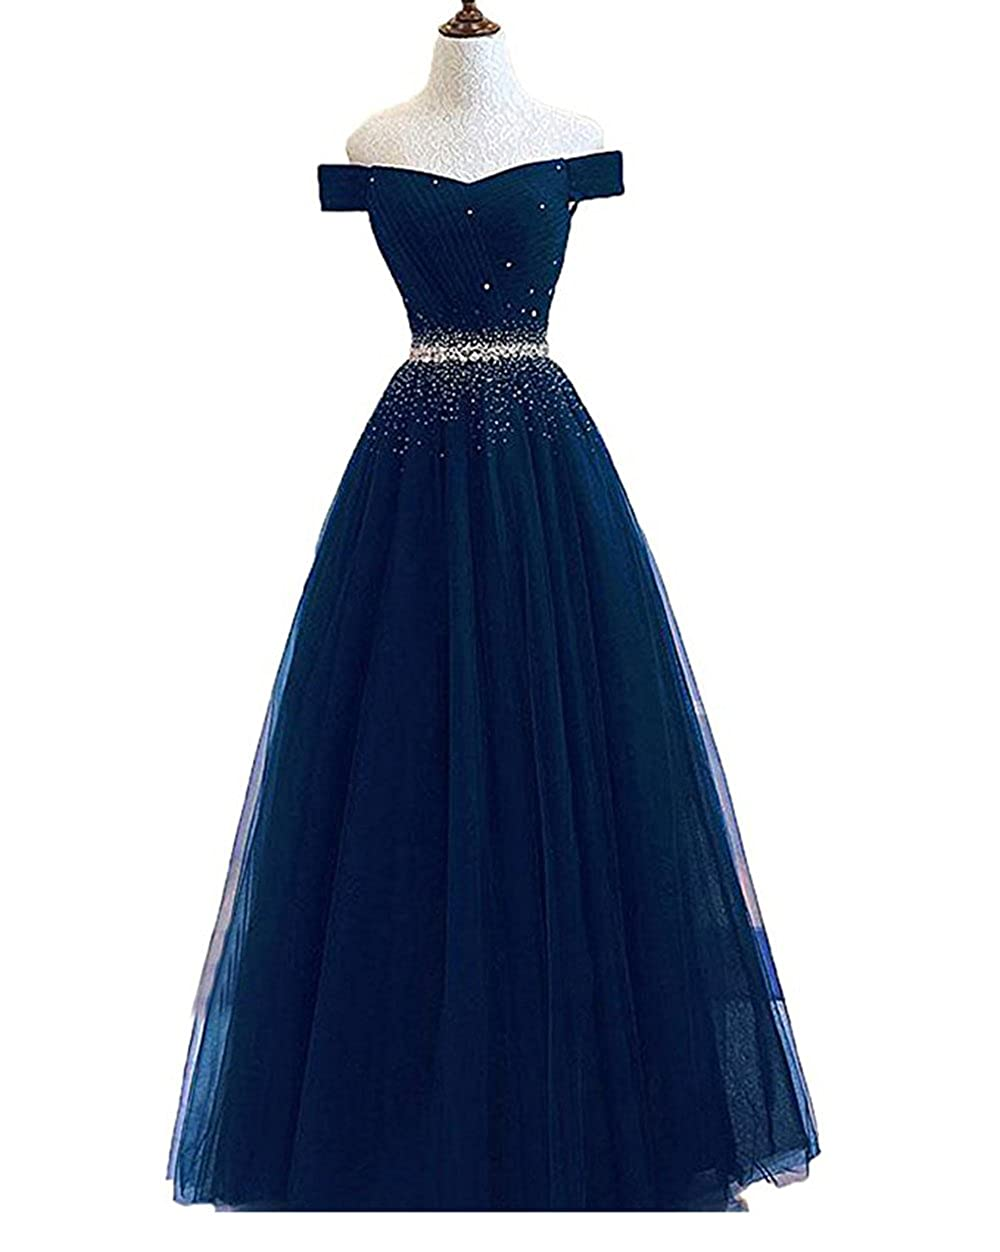 Navy alilith.Z Sexy Off The Shoulder A Line Prom Dresses Crystal Beaded Long Formal Evening Dresses Party Gowns for Women